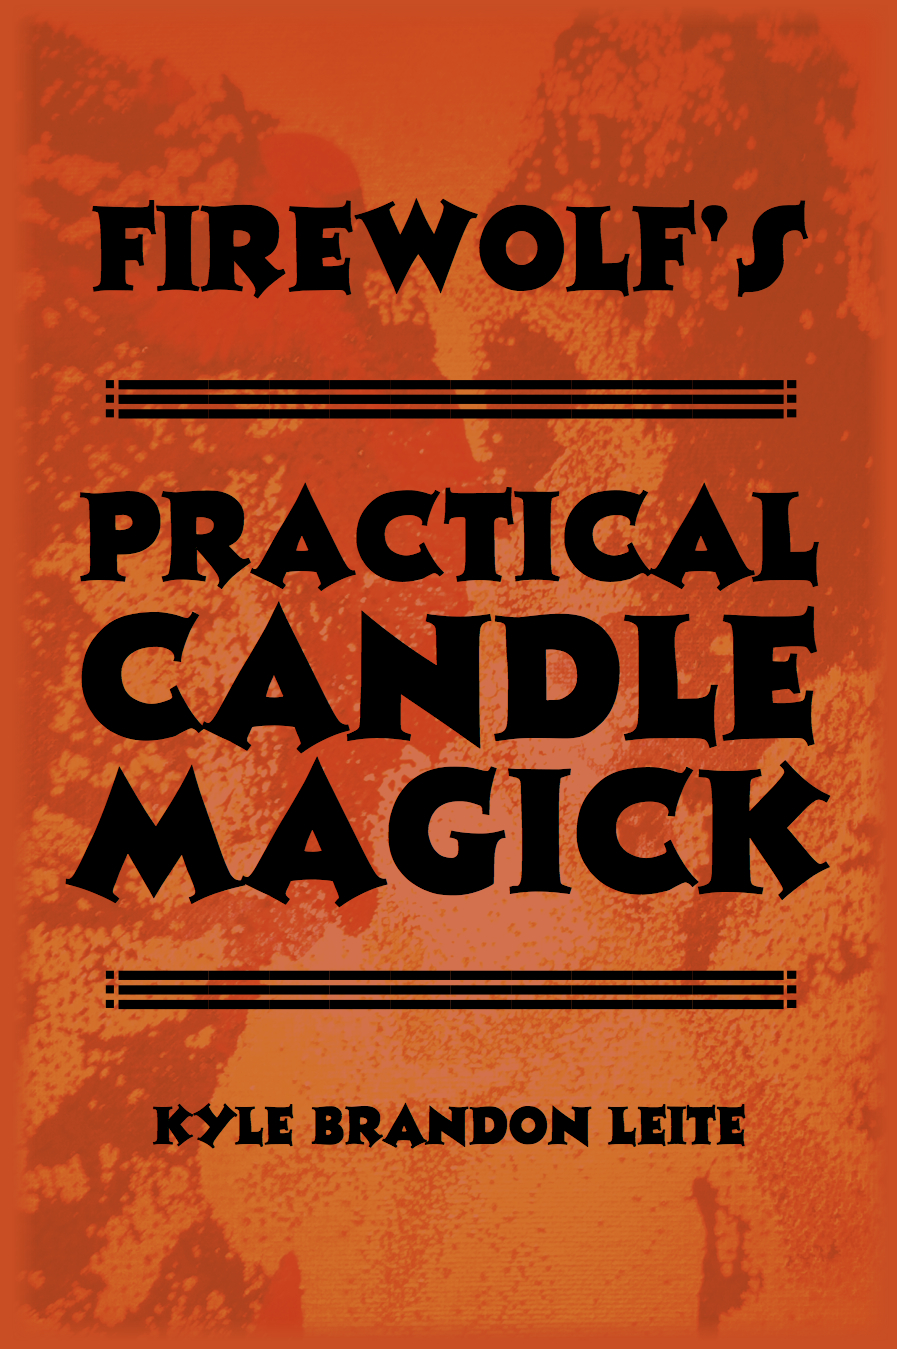 PRACTICAL CANDLE MAGICK